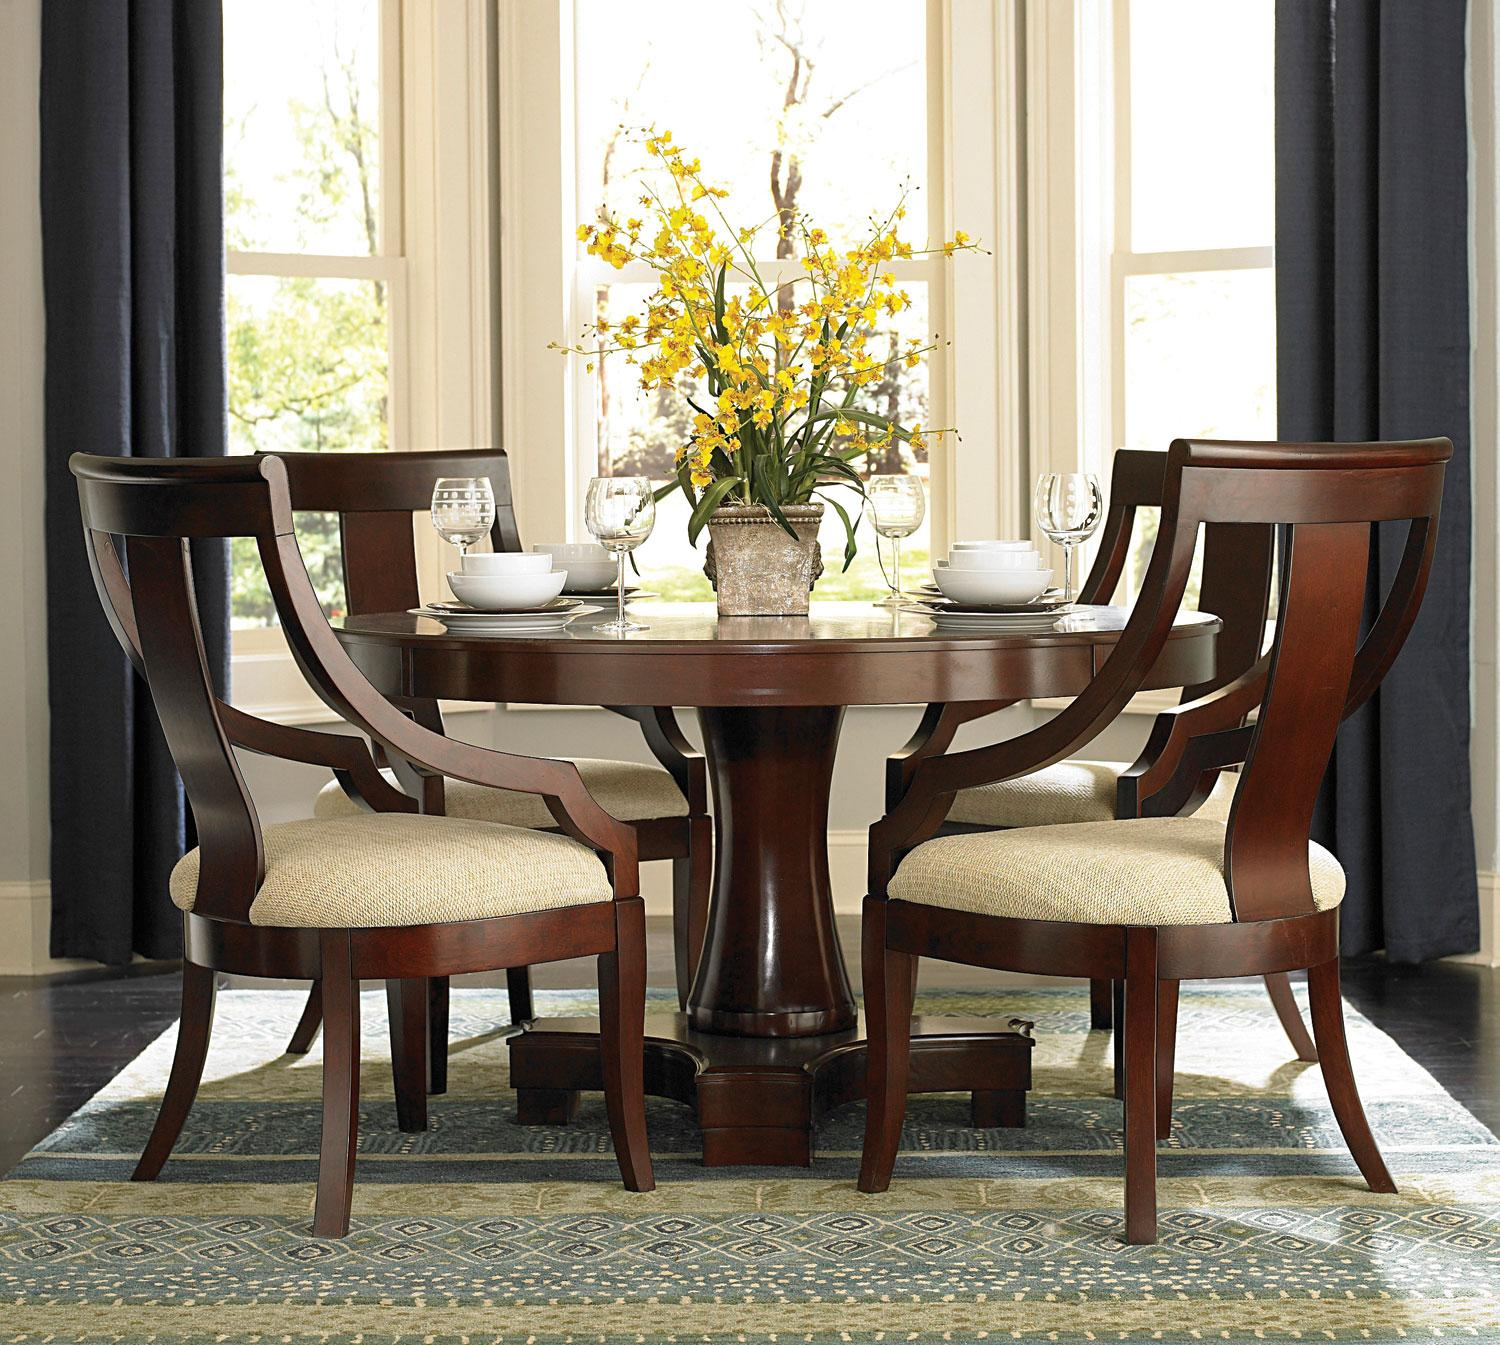 Miraculous pedestal dining table and chairs for dining room with round pedestal dining table